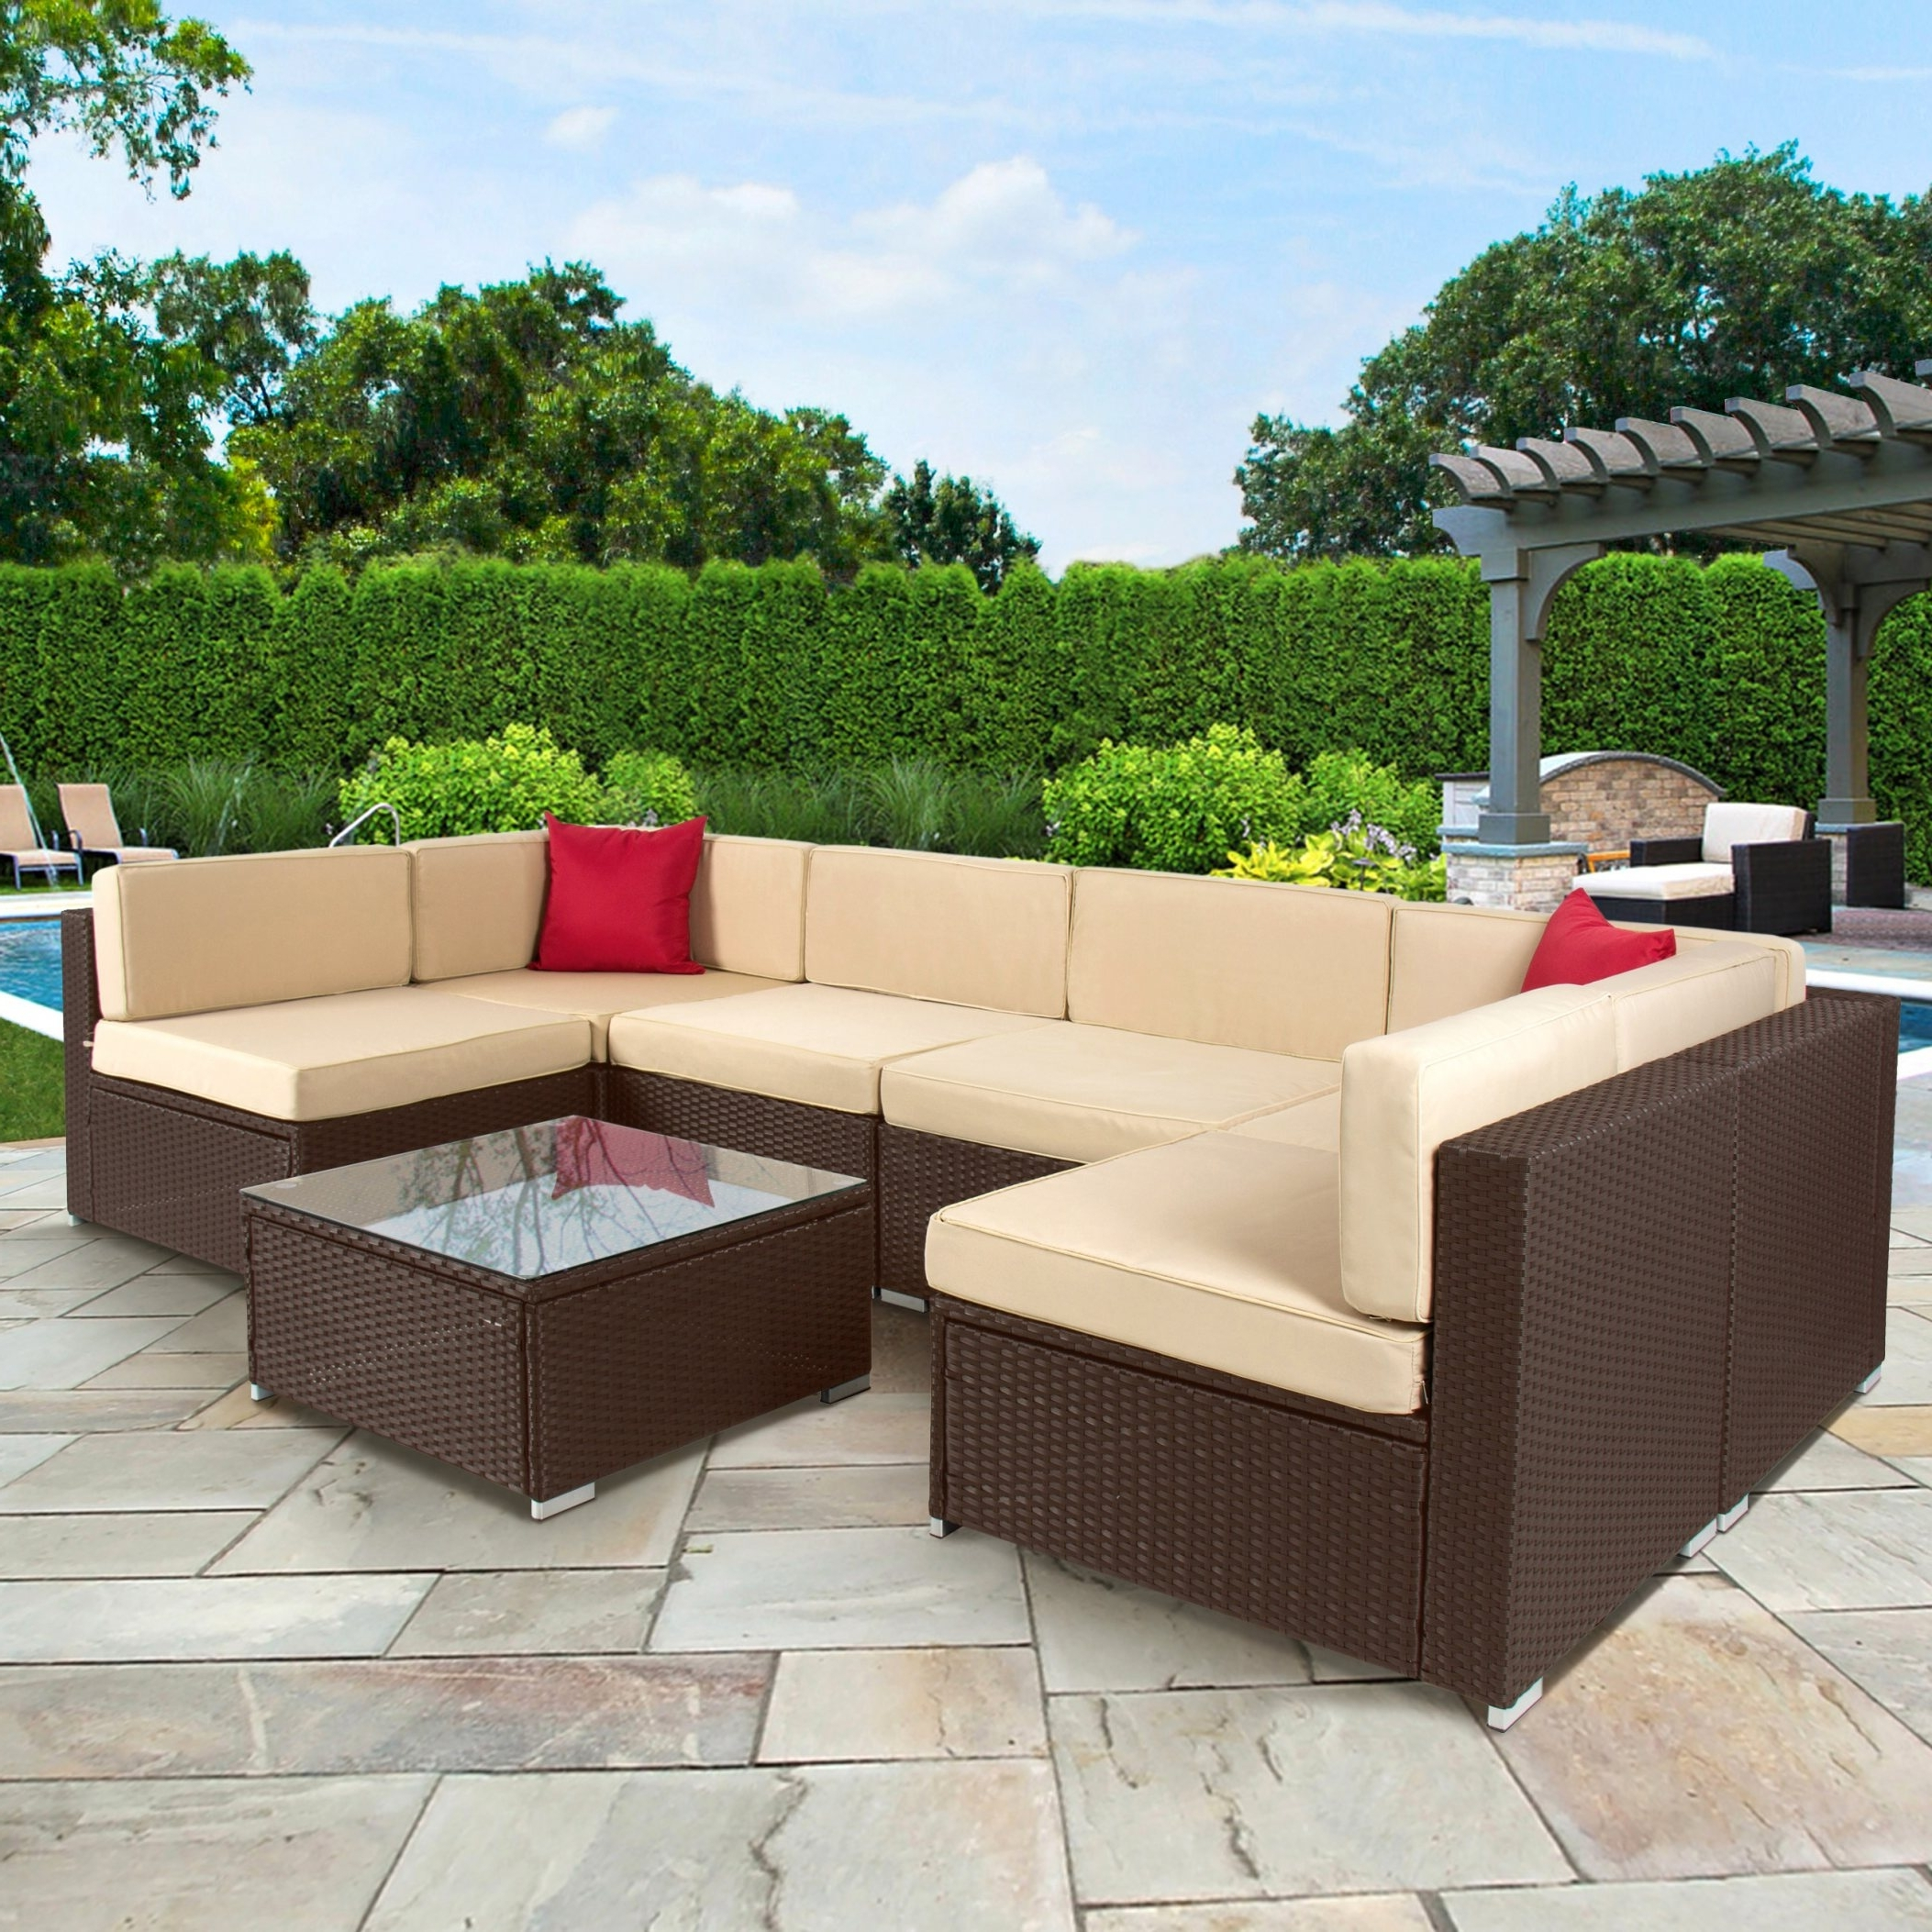 Outdoor Patio Sofas #6 Outsunny 7 Piece Outdoor Patio Rattan Pertaining To Current Patio Sofas (View 7 of 20)